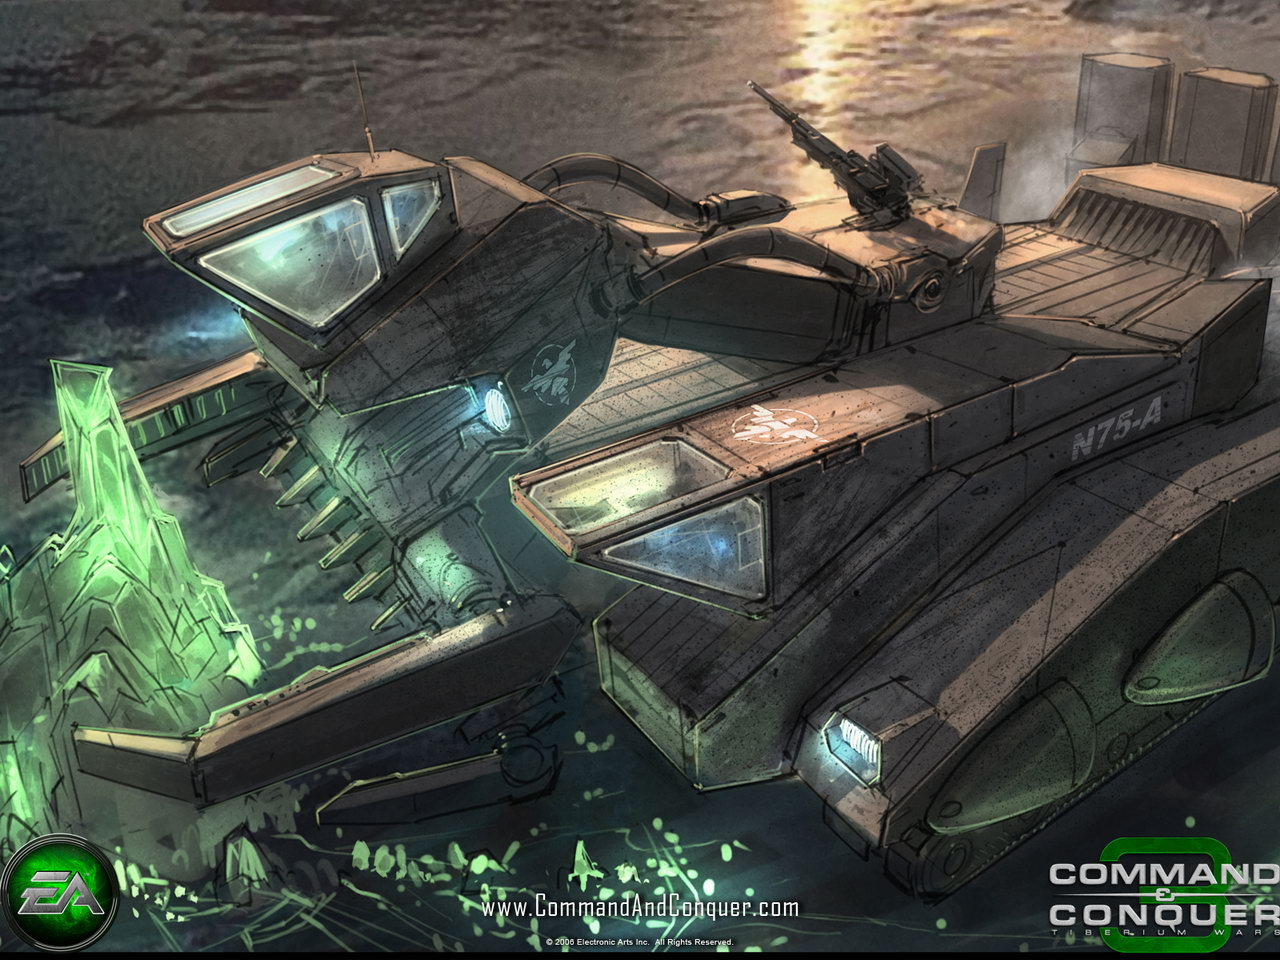 Command-Conquer_06_1280x960.jpg